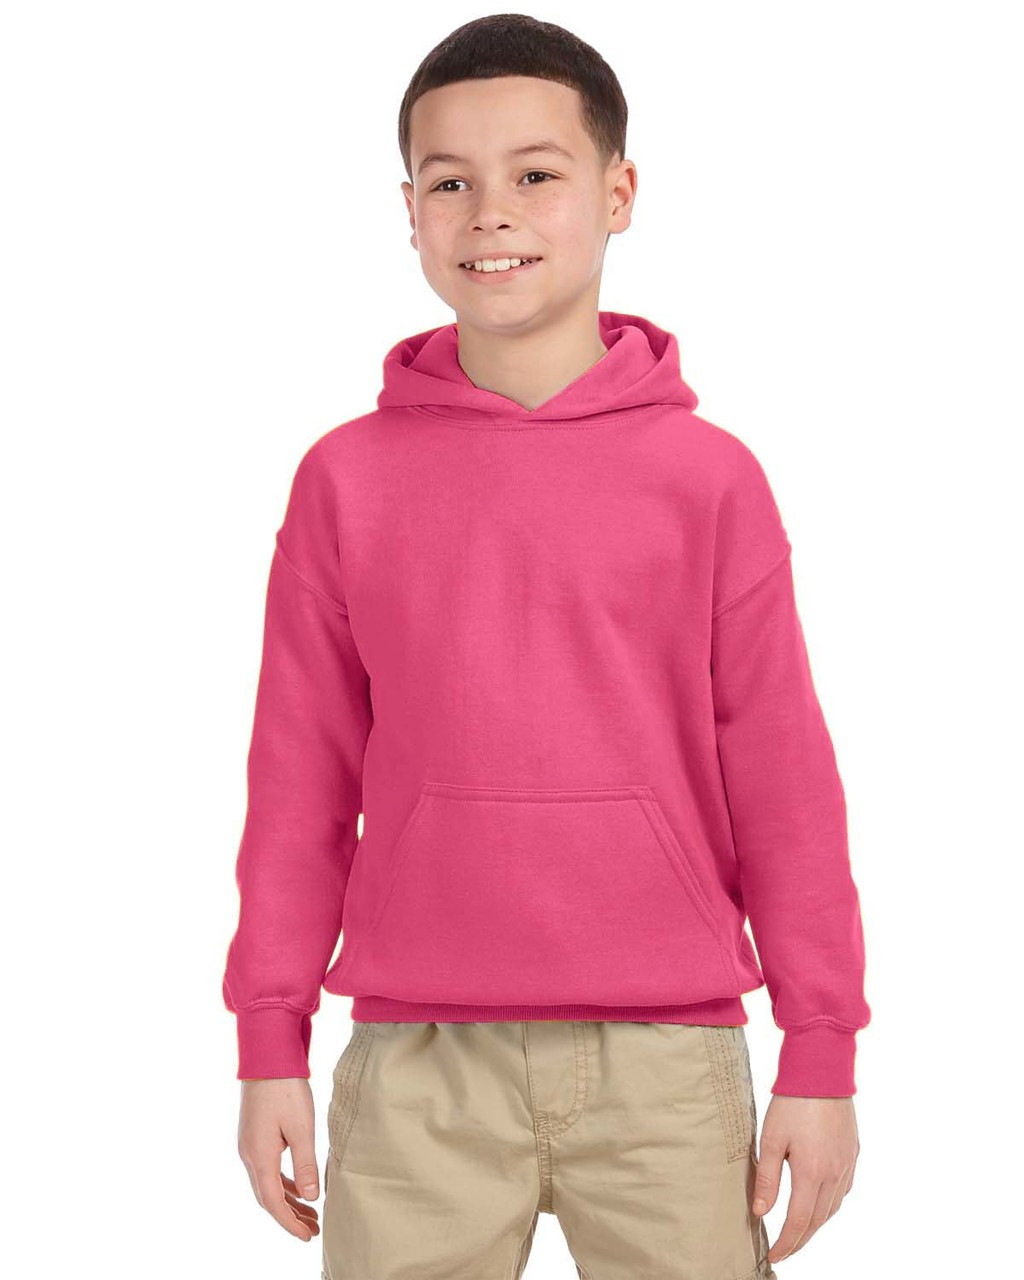 Safety Pink - G185B Gildan Heavy Blend Youth 50/50 Hoodie | Blankclothing.ca